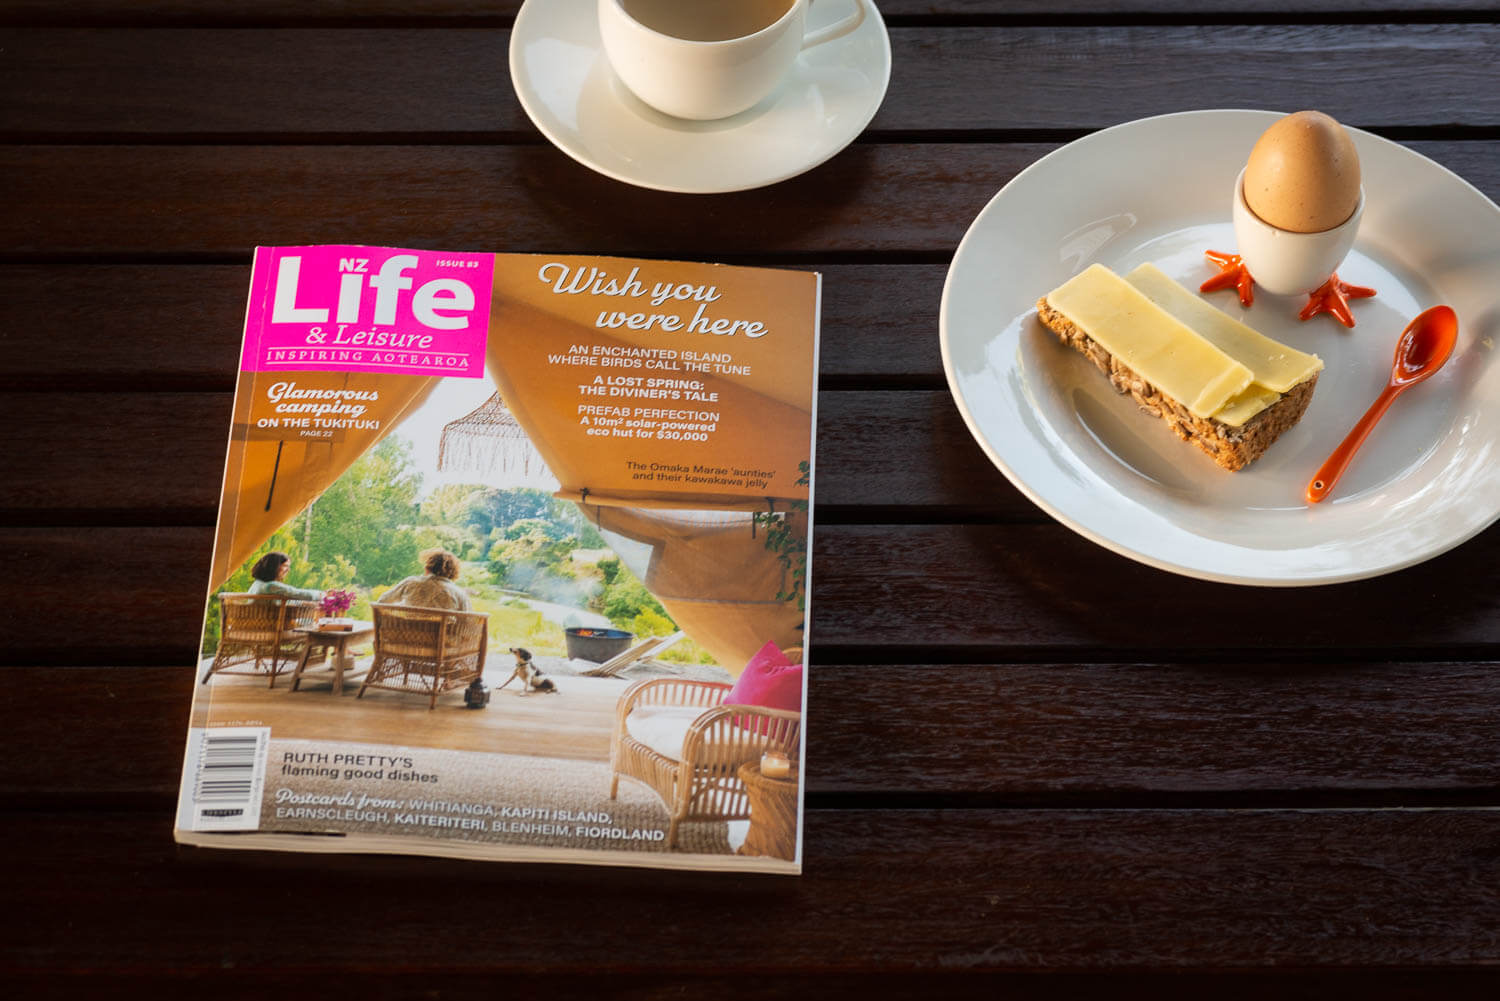 Life & Leisure cover